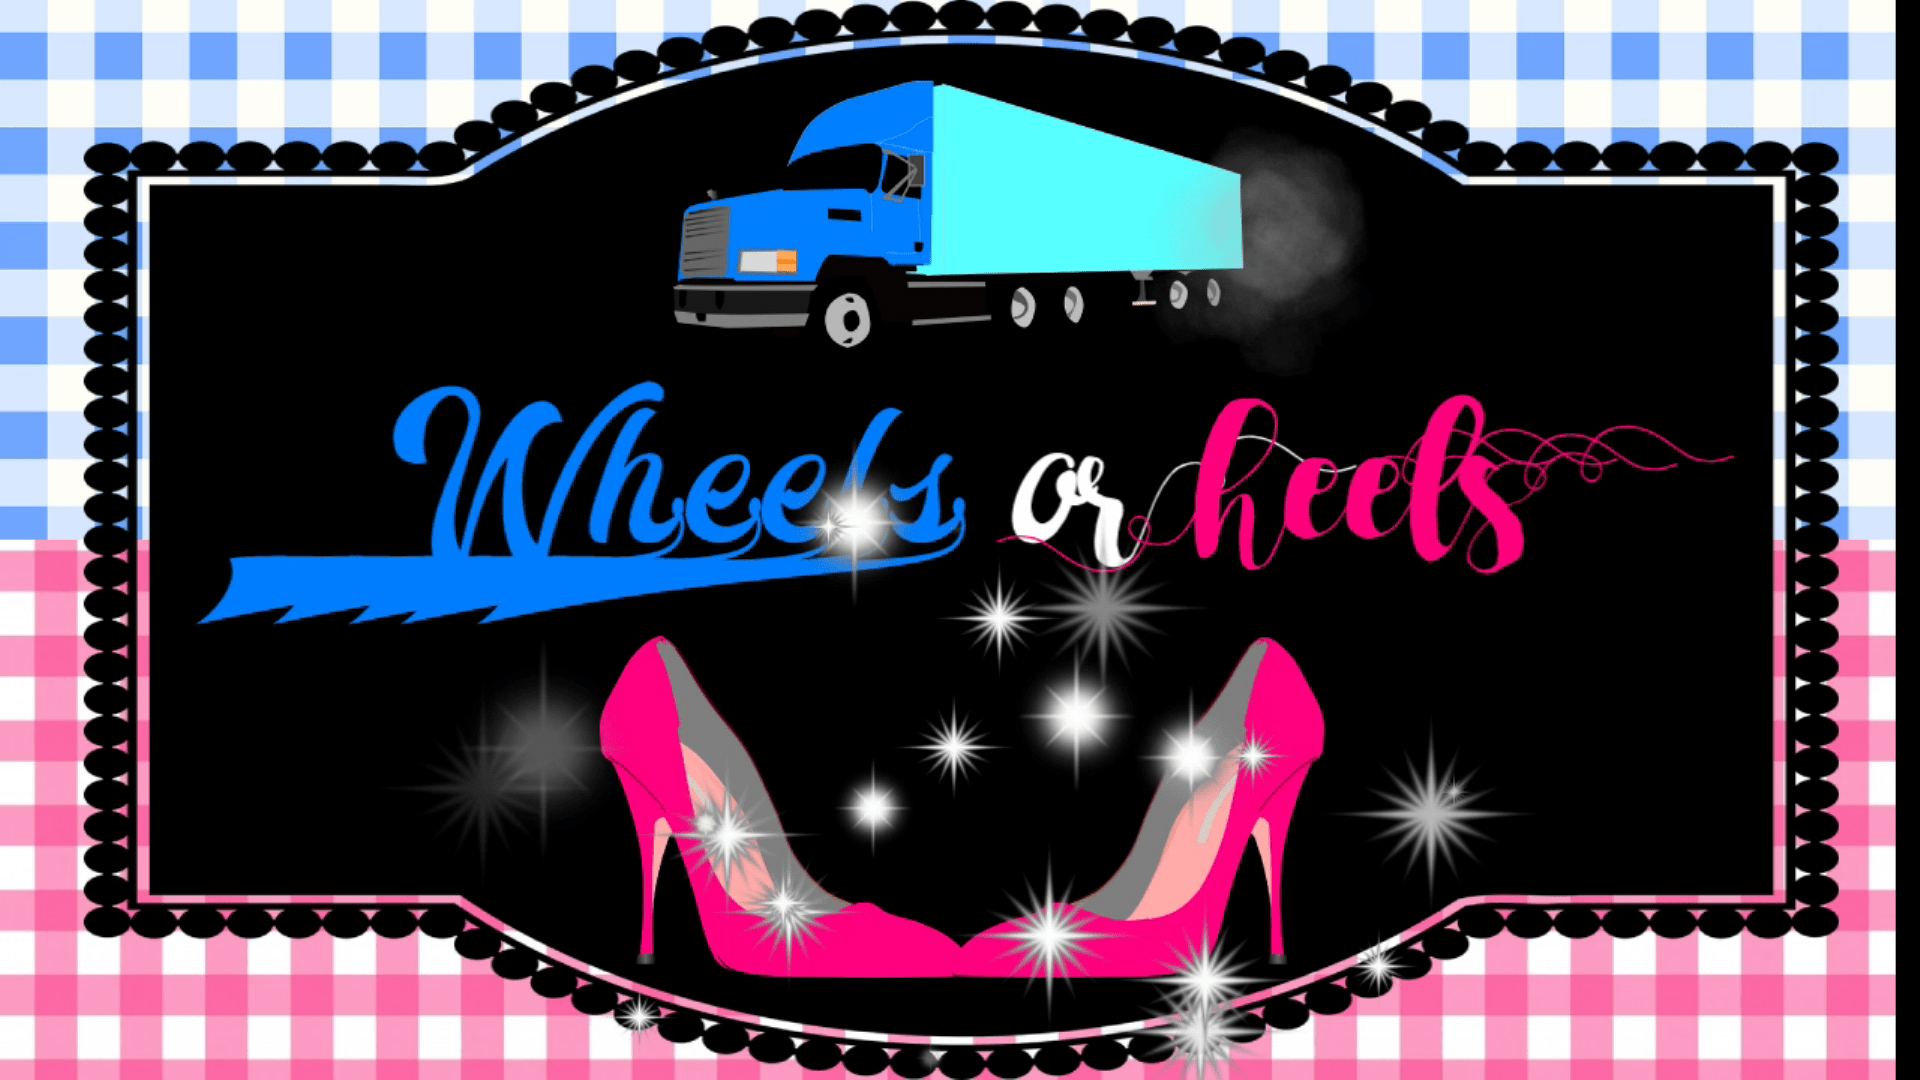 Wheels Or Heels Canned Expressions